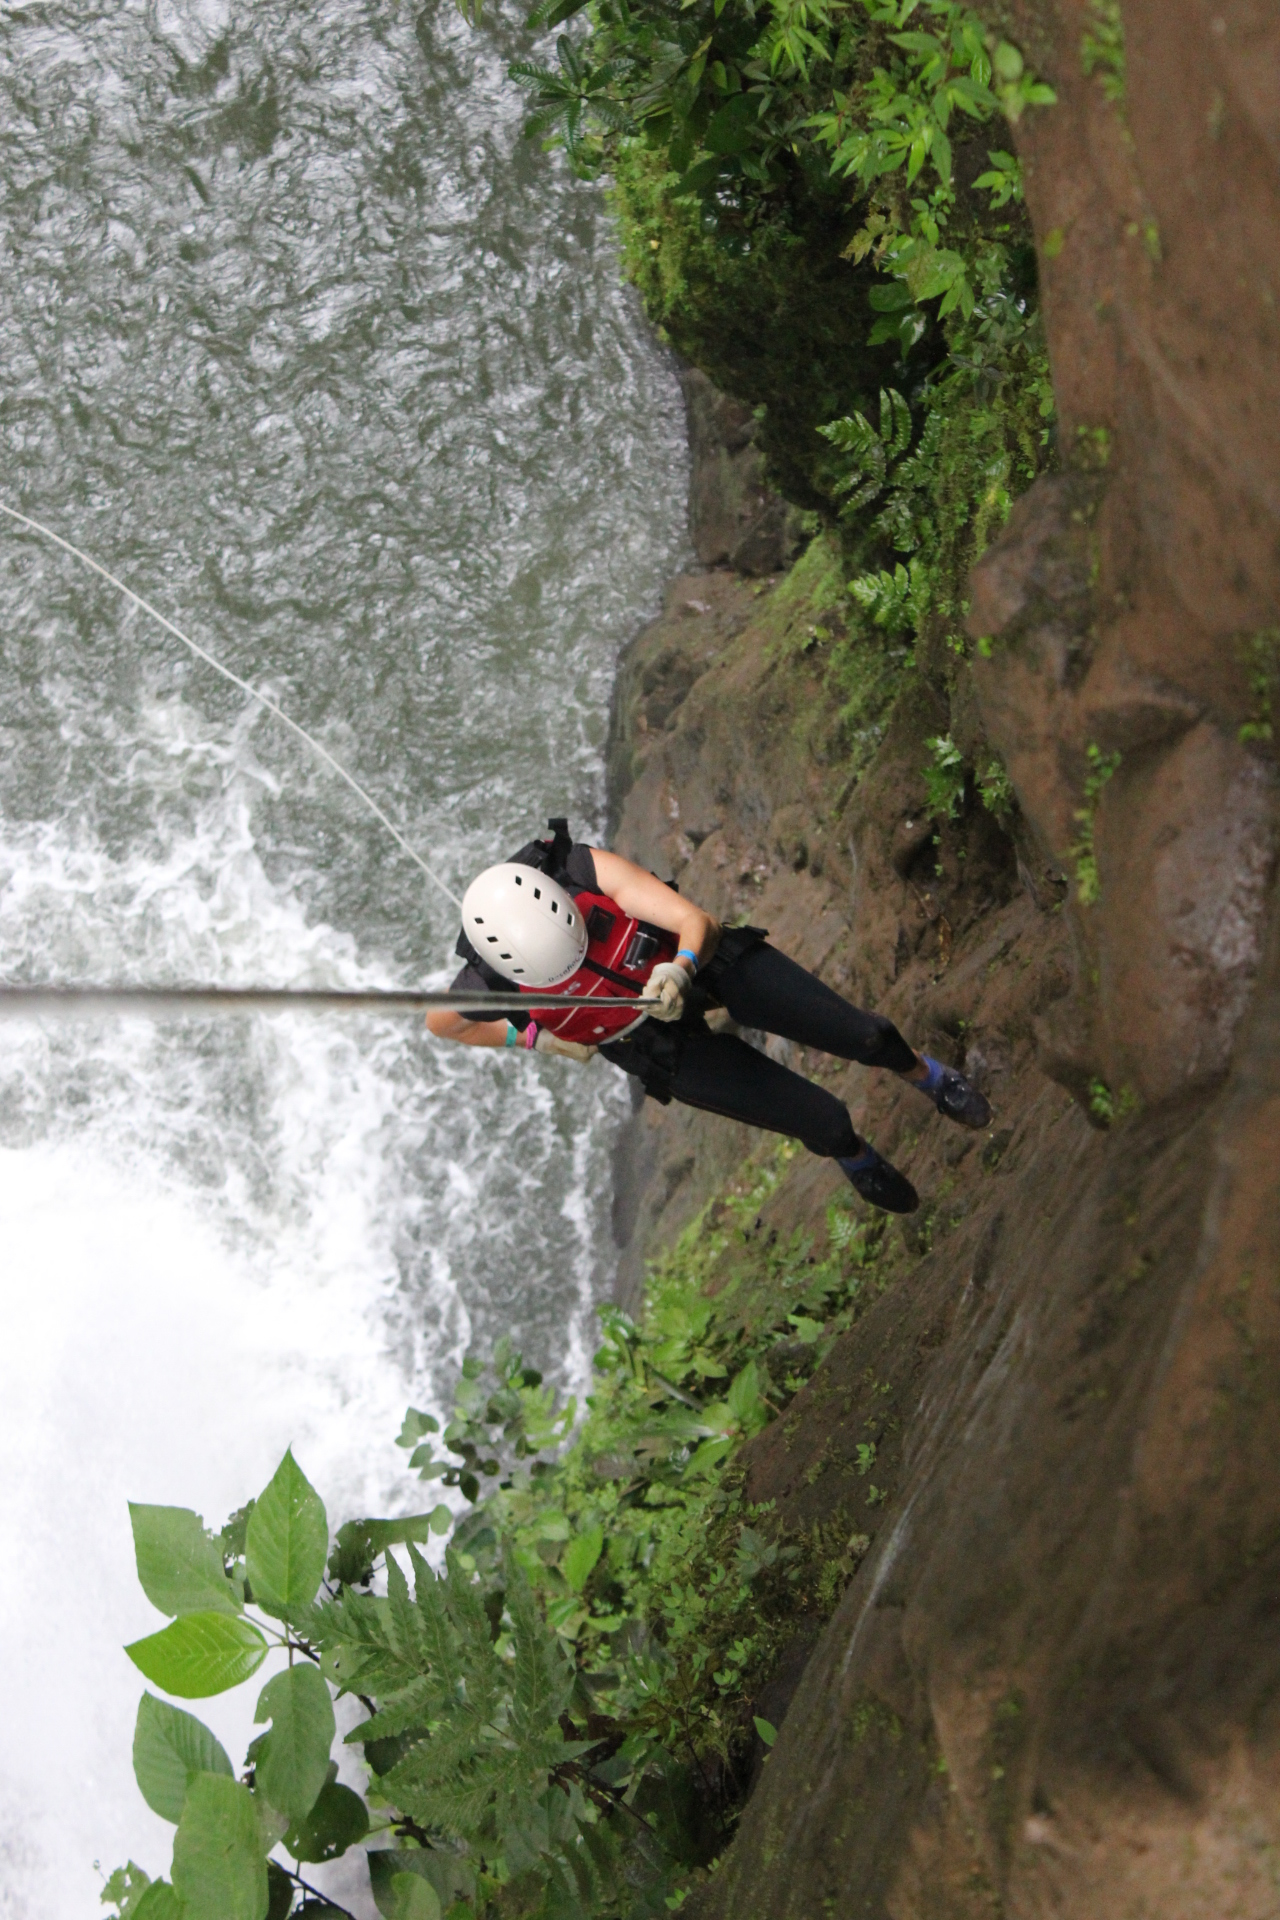 CoverMore_Lisa_Owen_Costa_Rica_LaFortuna_GravityFalls_Rappel_Down.JPG